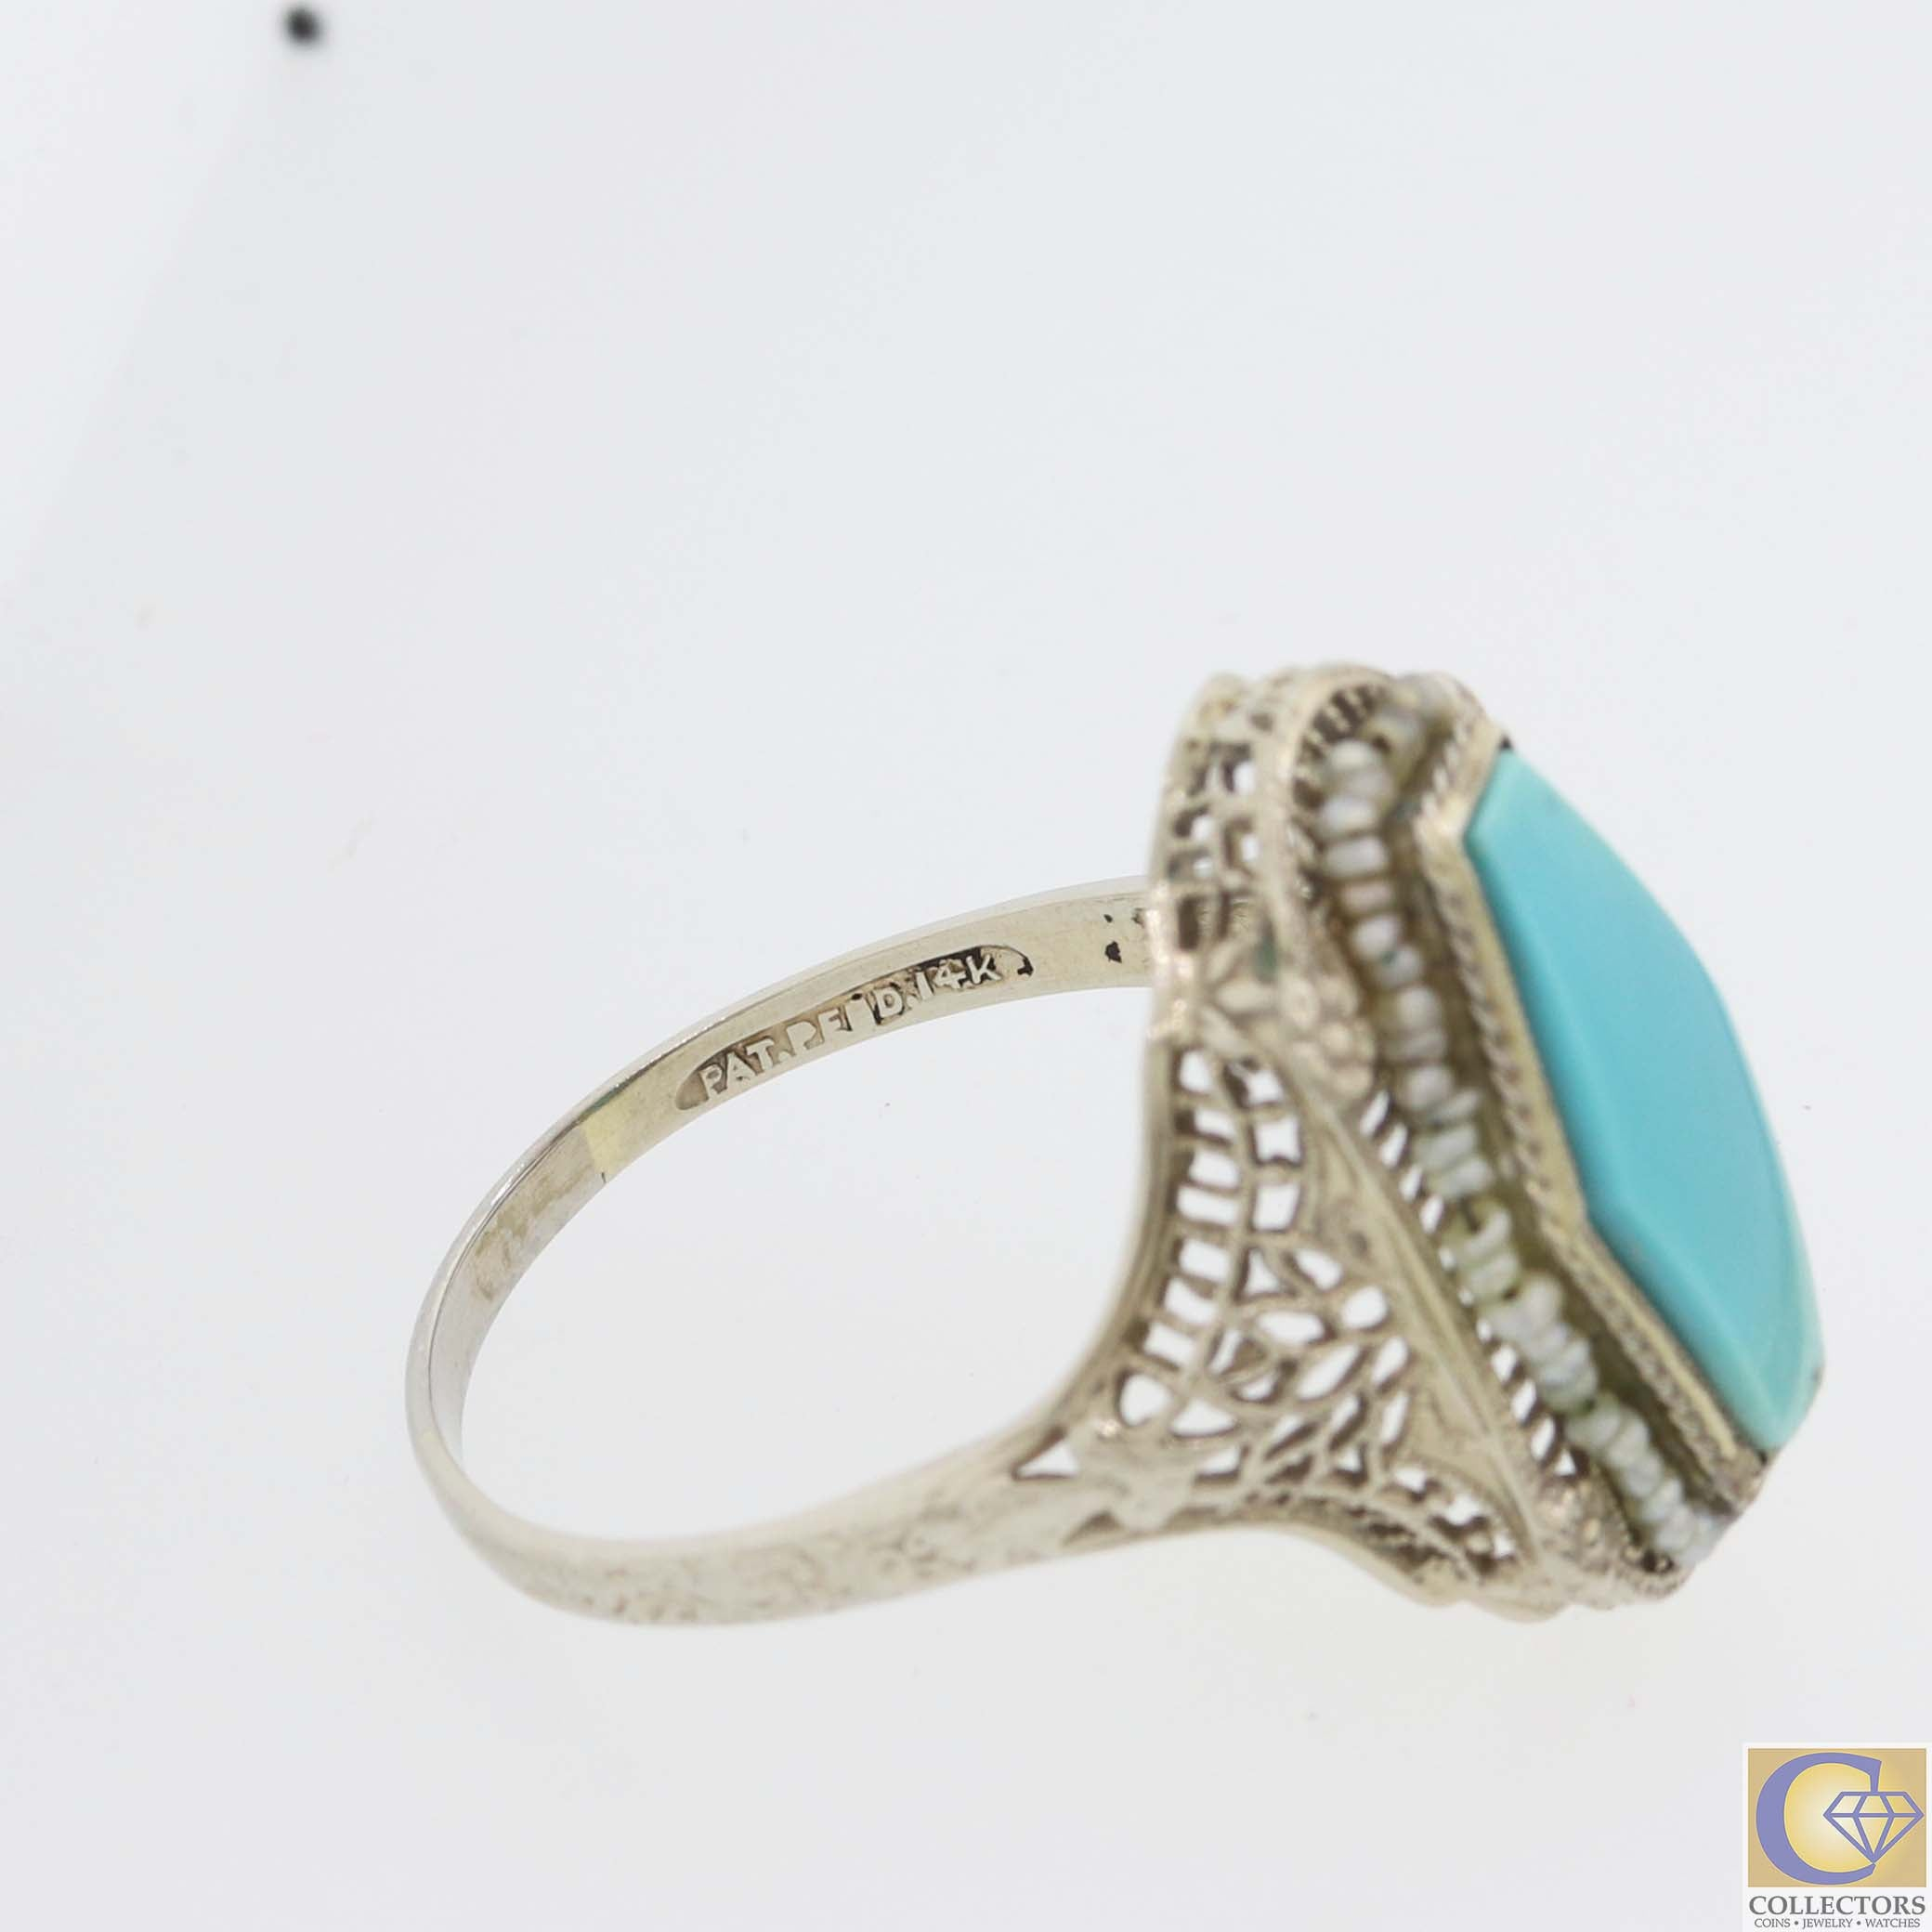 1930s Antique Art Deco 14k White Gold Turquoise Seed Pearl Ring A8